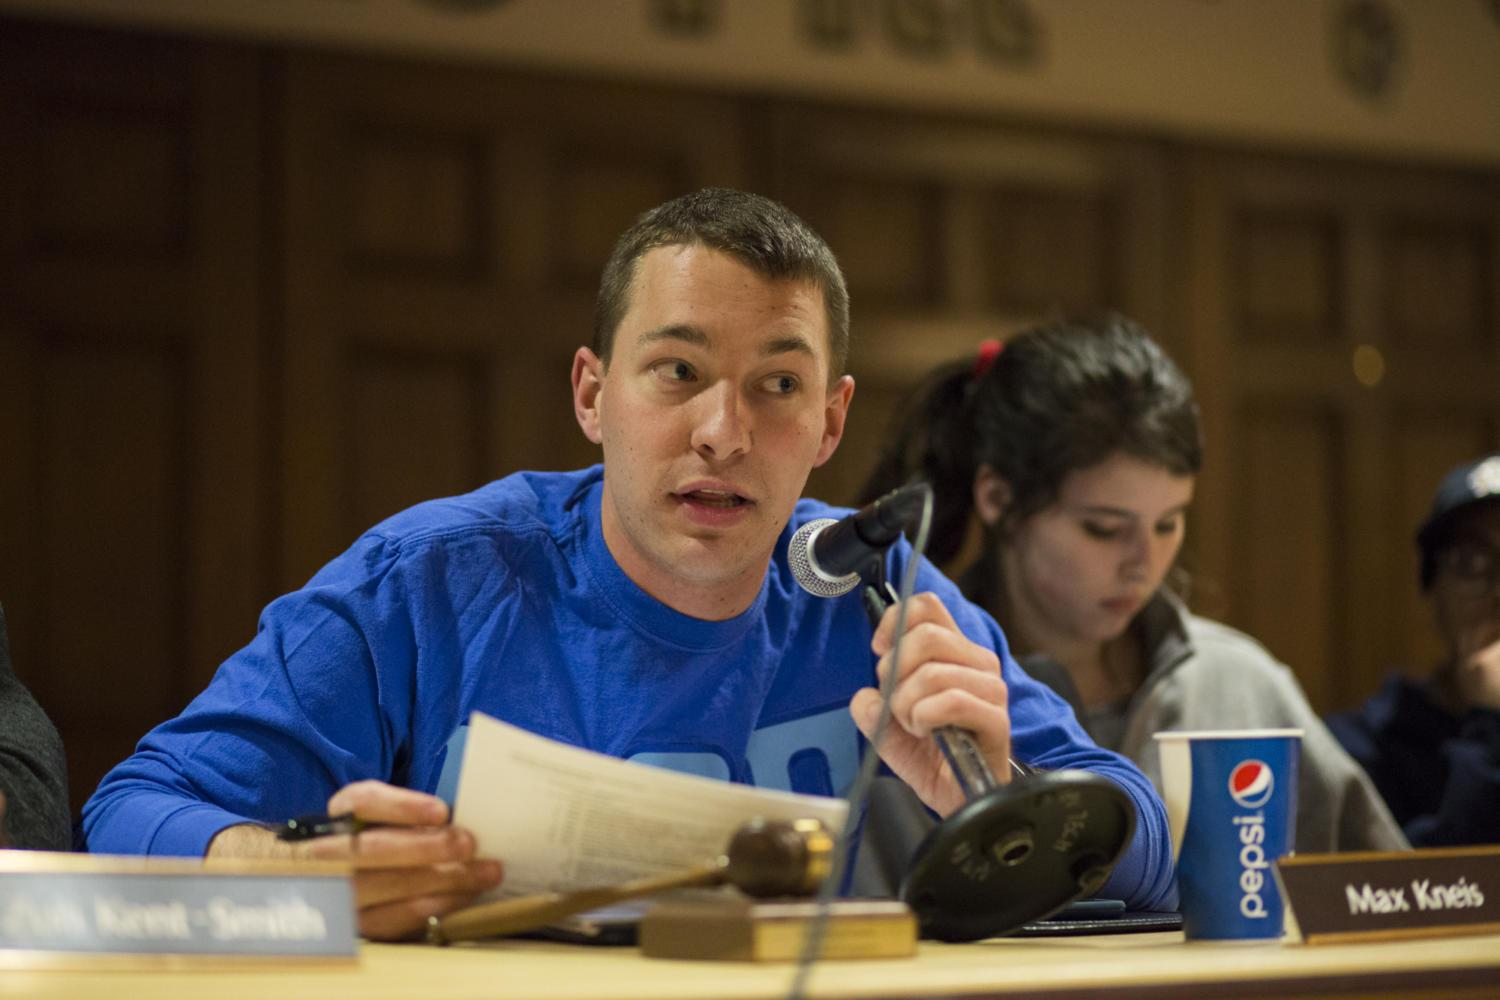 SGB President Max Kneis discussed the upcoming March For Our Lives event Saturday. (Photo by Thomas Yang | Visual Editor)